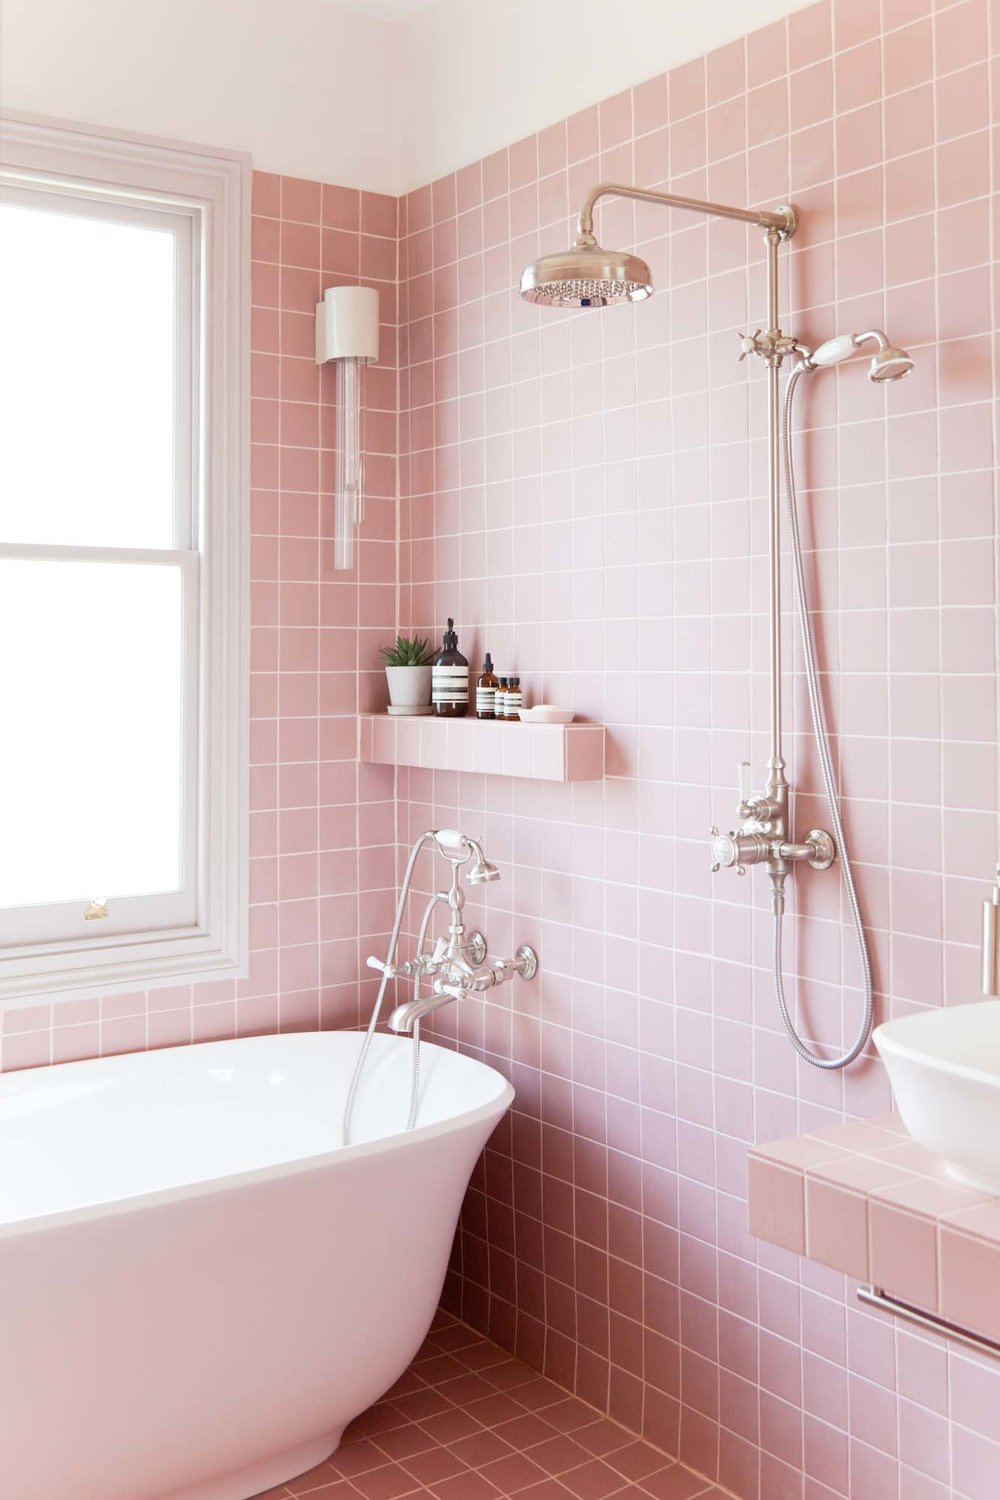 The boys' pink bathroom of dreams/Photo: Megan Taylor